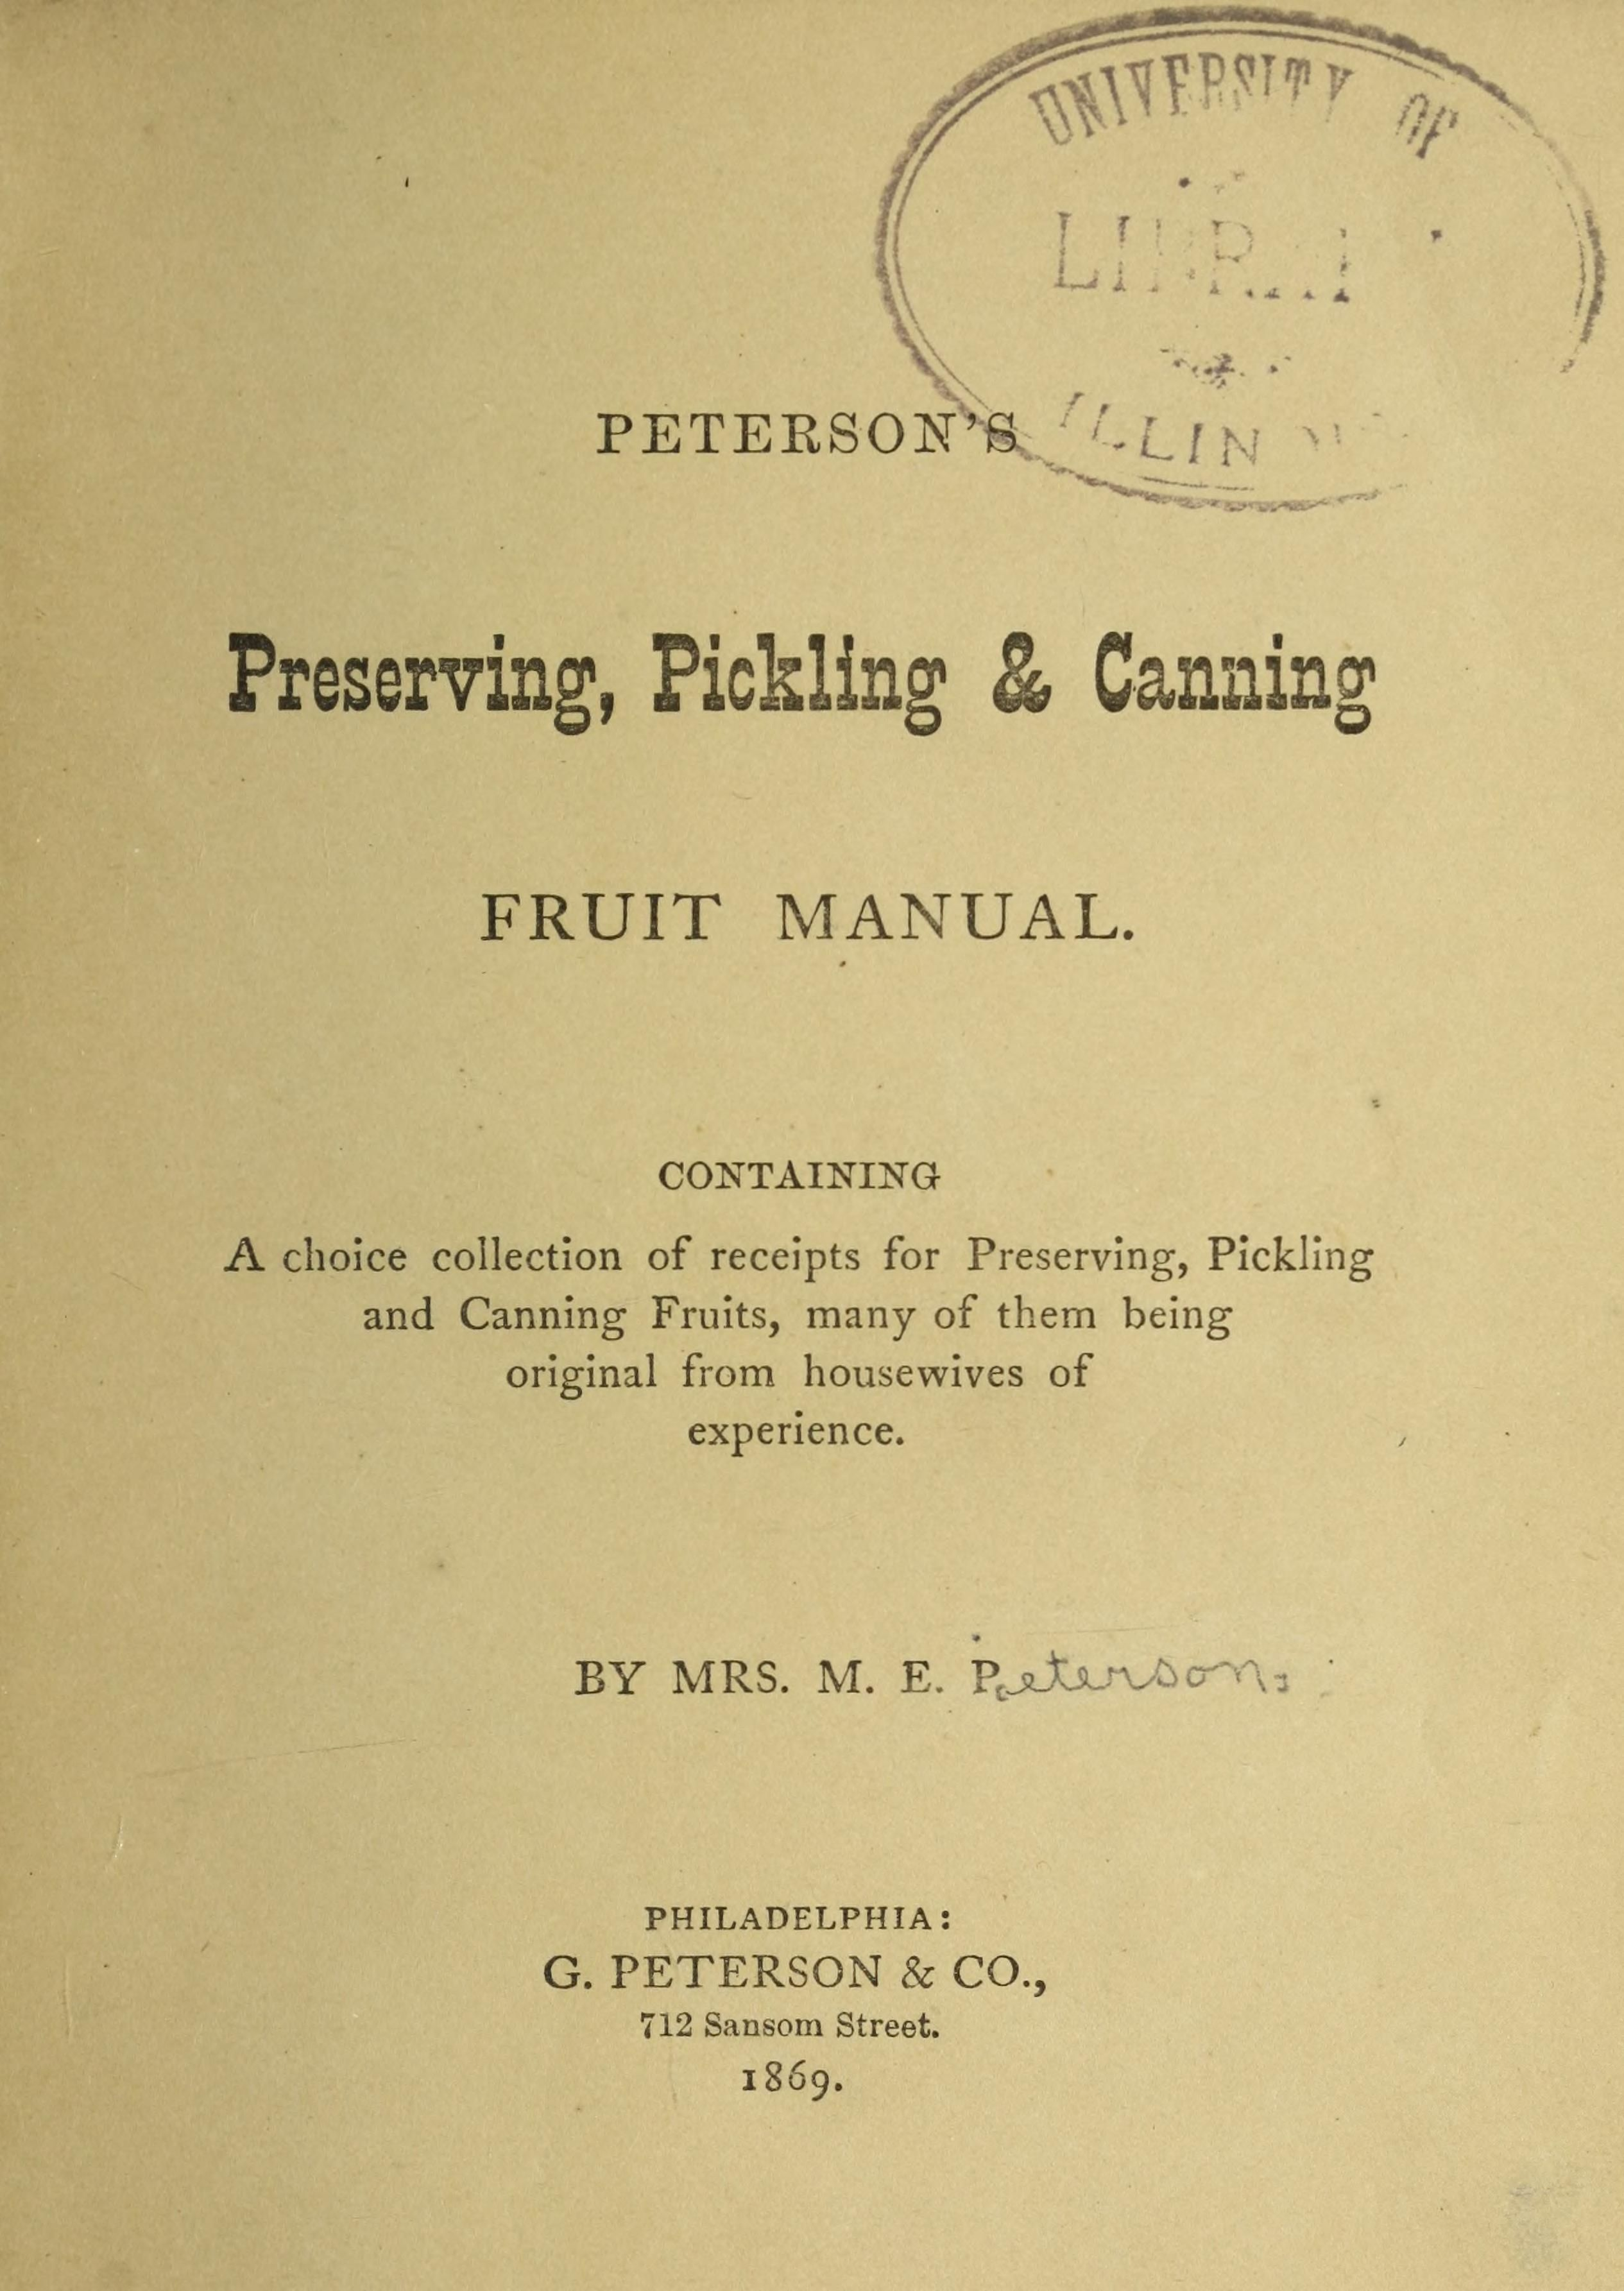 Peterson's preserving, pickling & canning, fruit manual ..